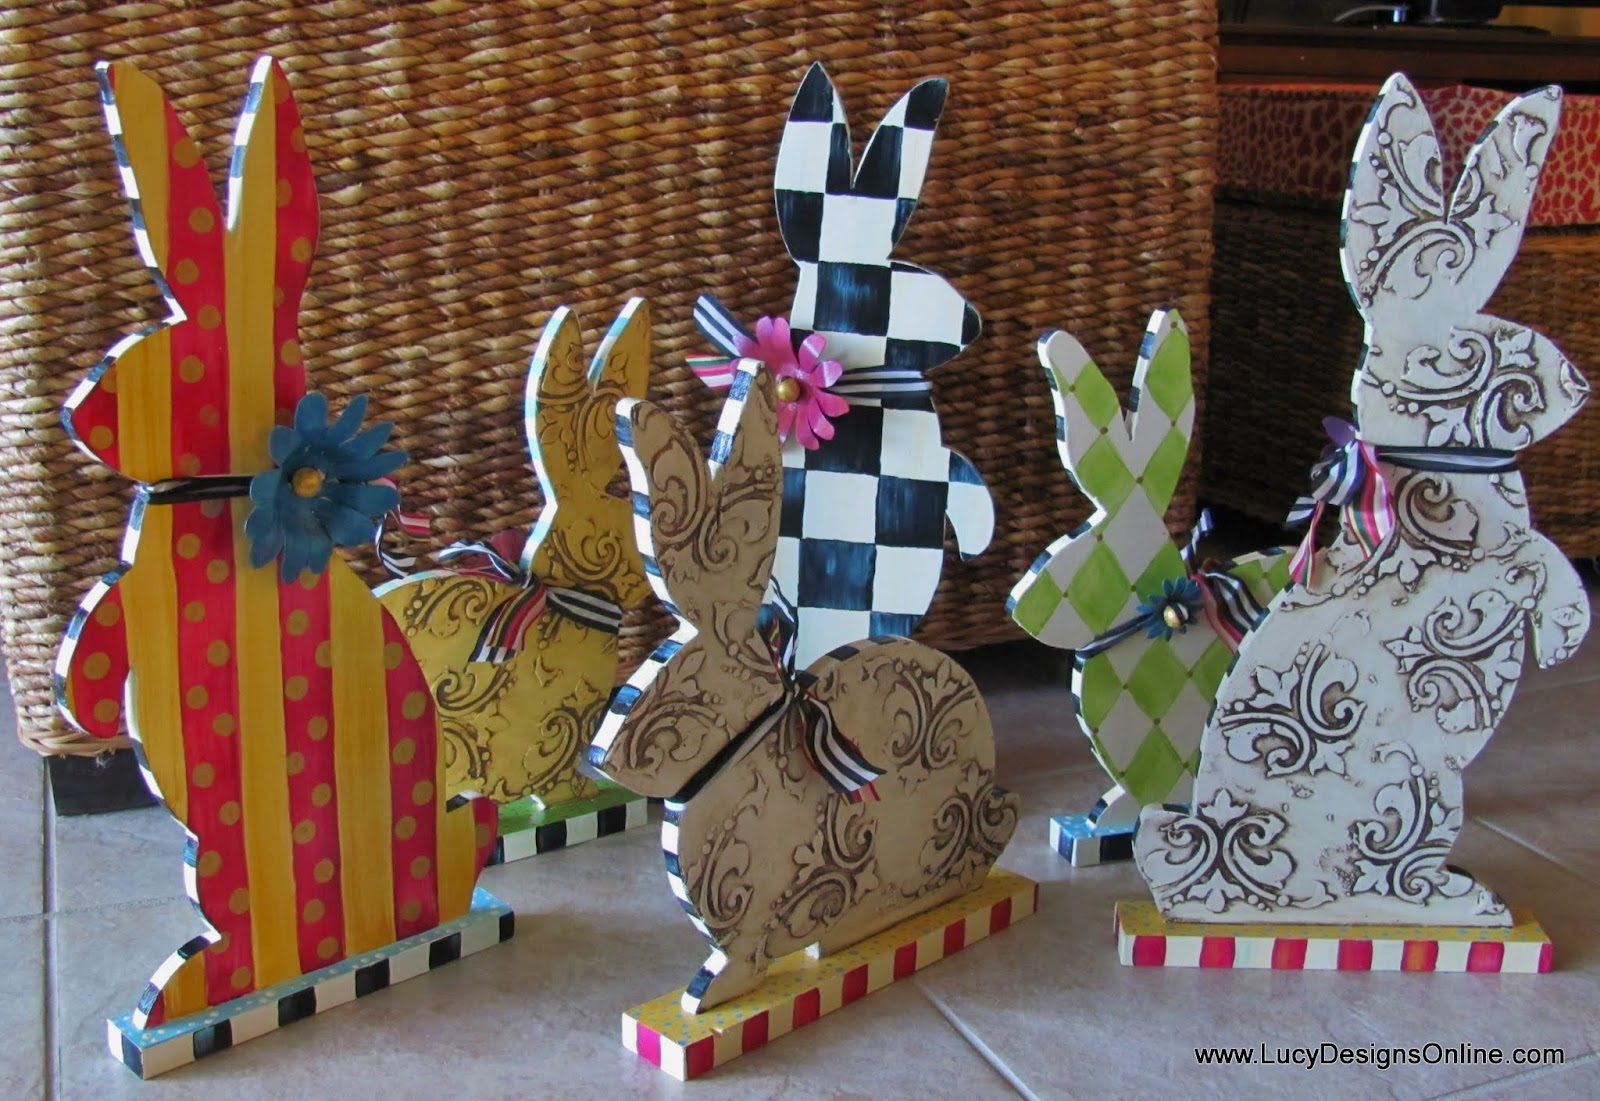 hand painted rabbit sculptures